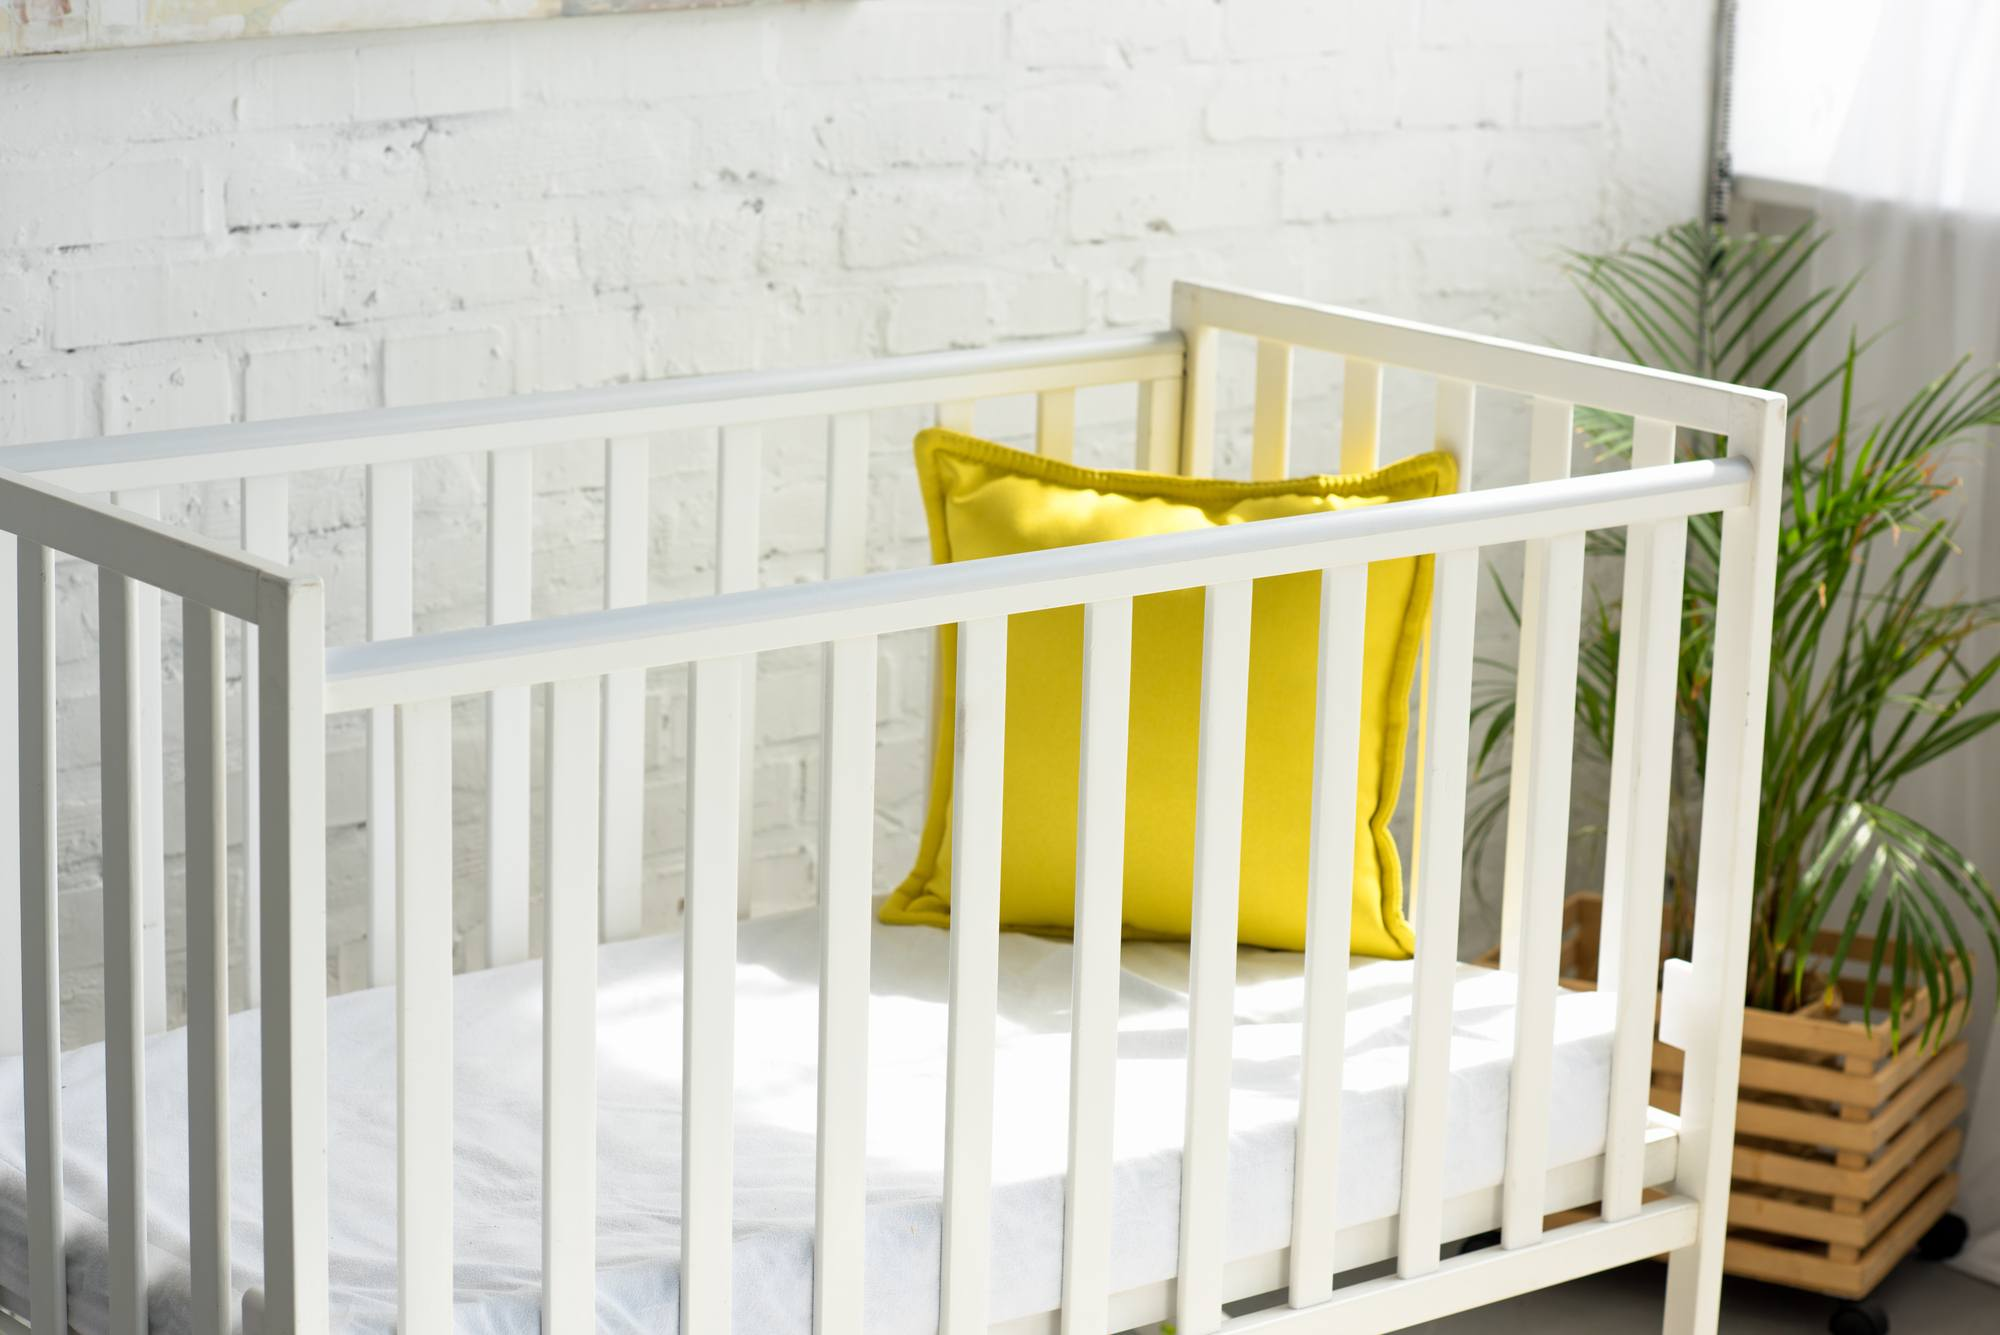 Many babies sleep better in a full-sized crib when traveling